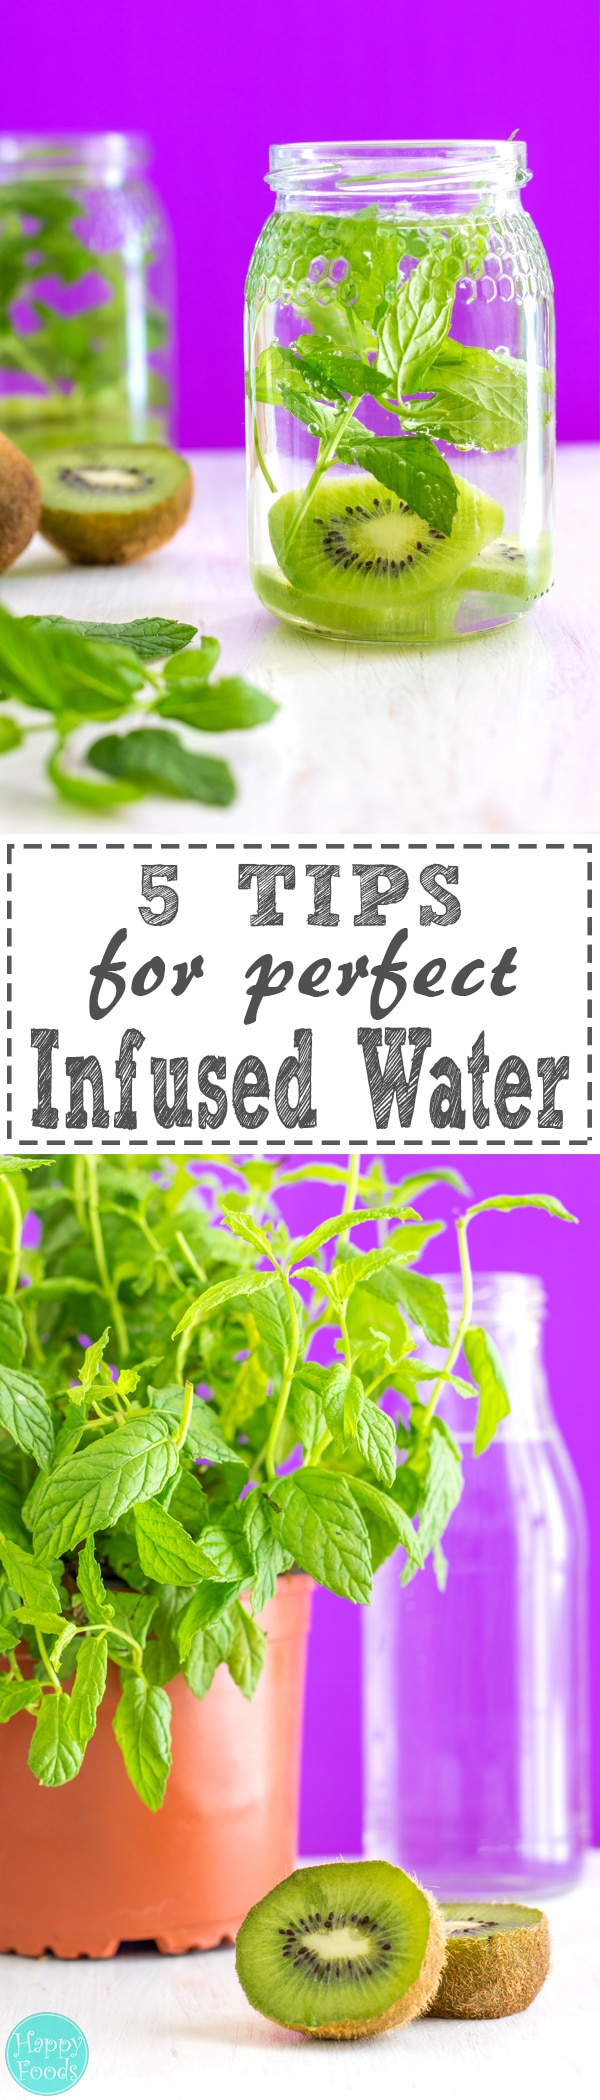 5 Tips for perfect Infused Water - Perfect for hydrating on hot summer days! Naturally flavored drink ❤ | happyfoodstube.com